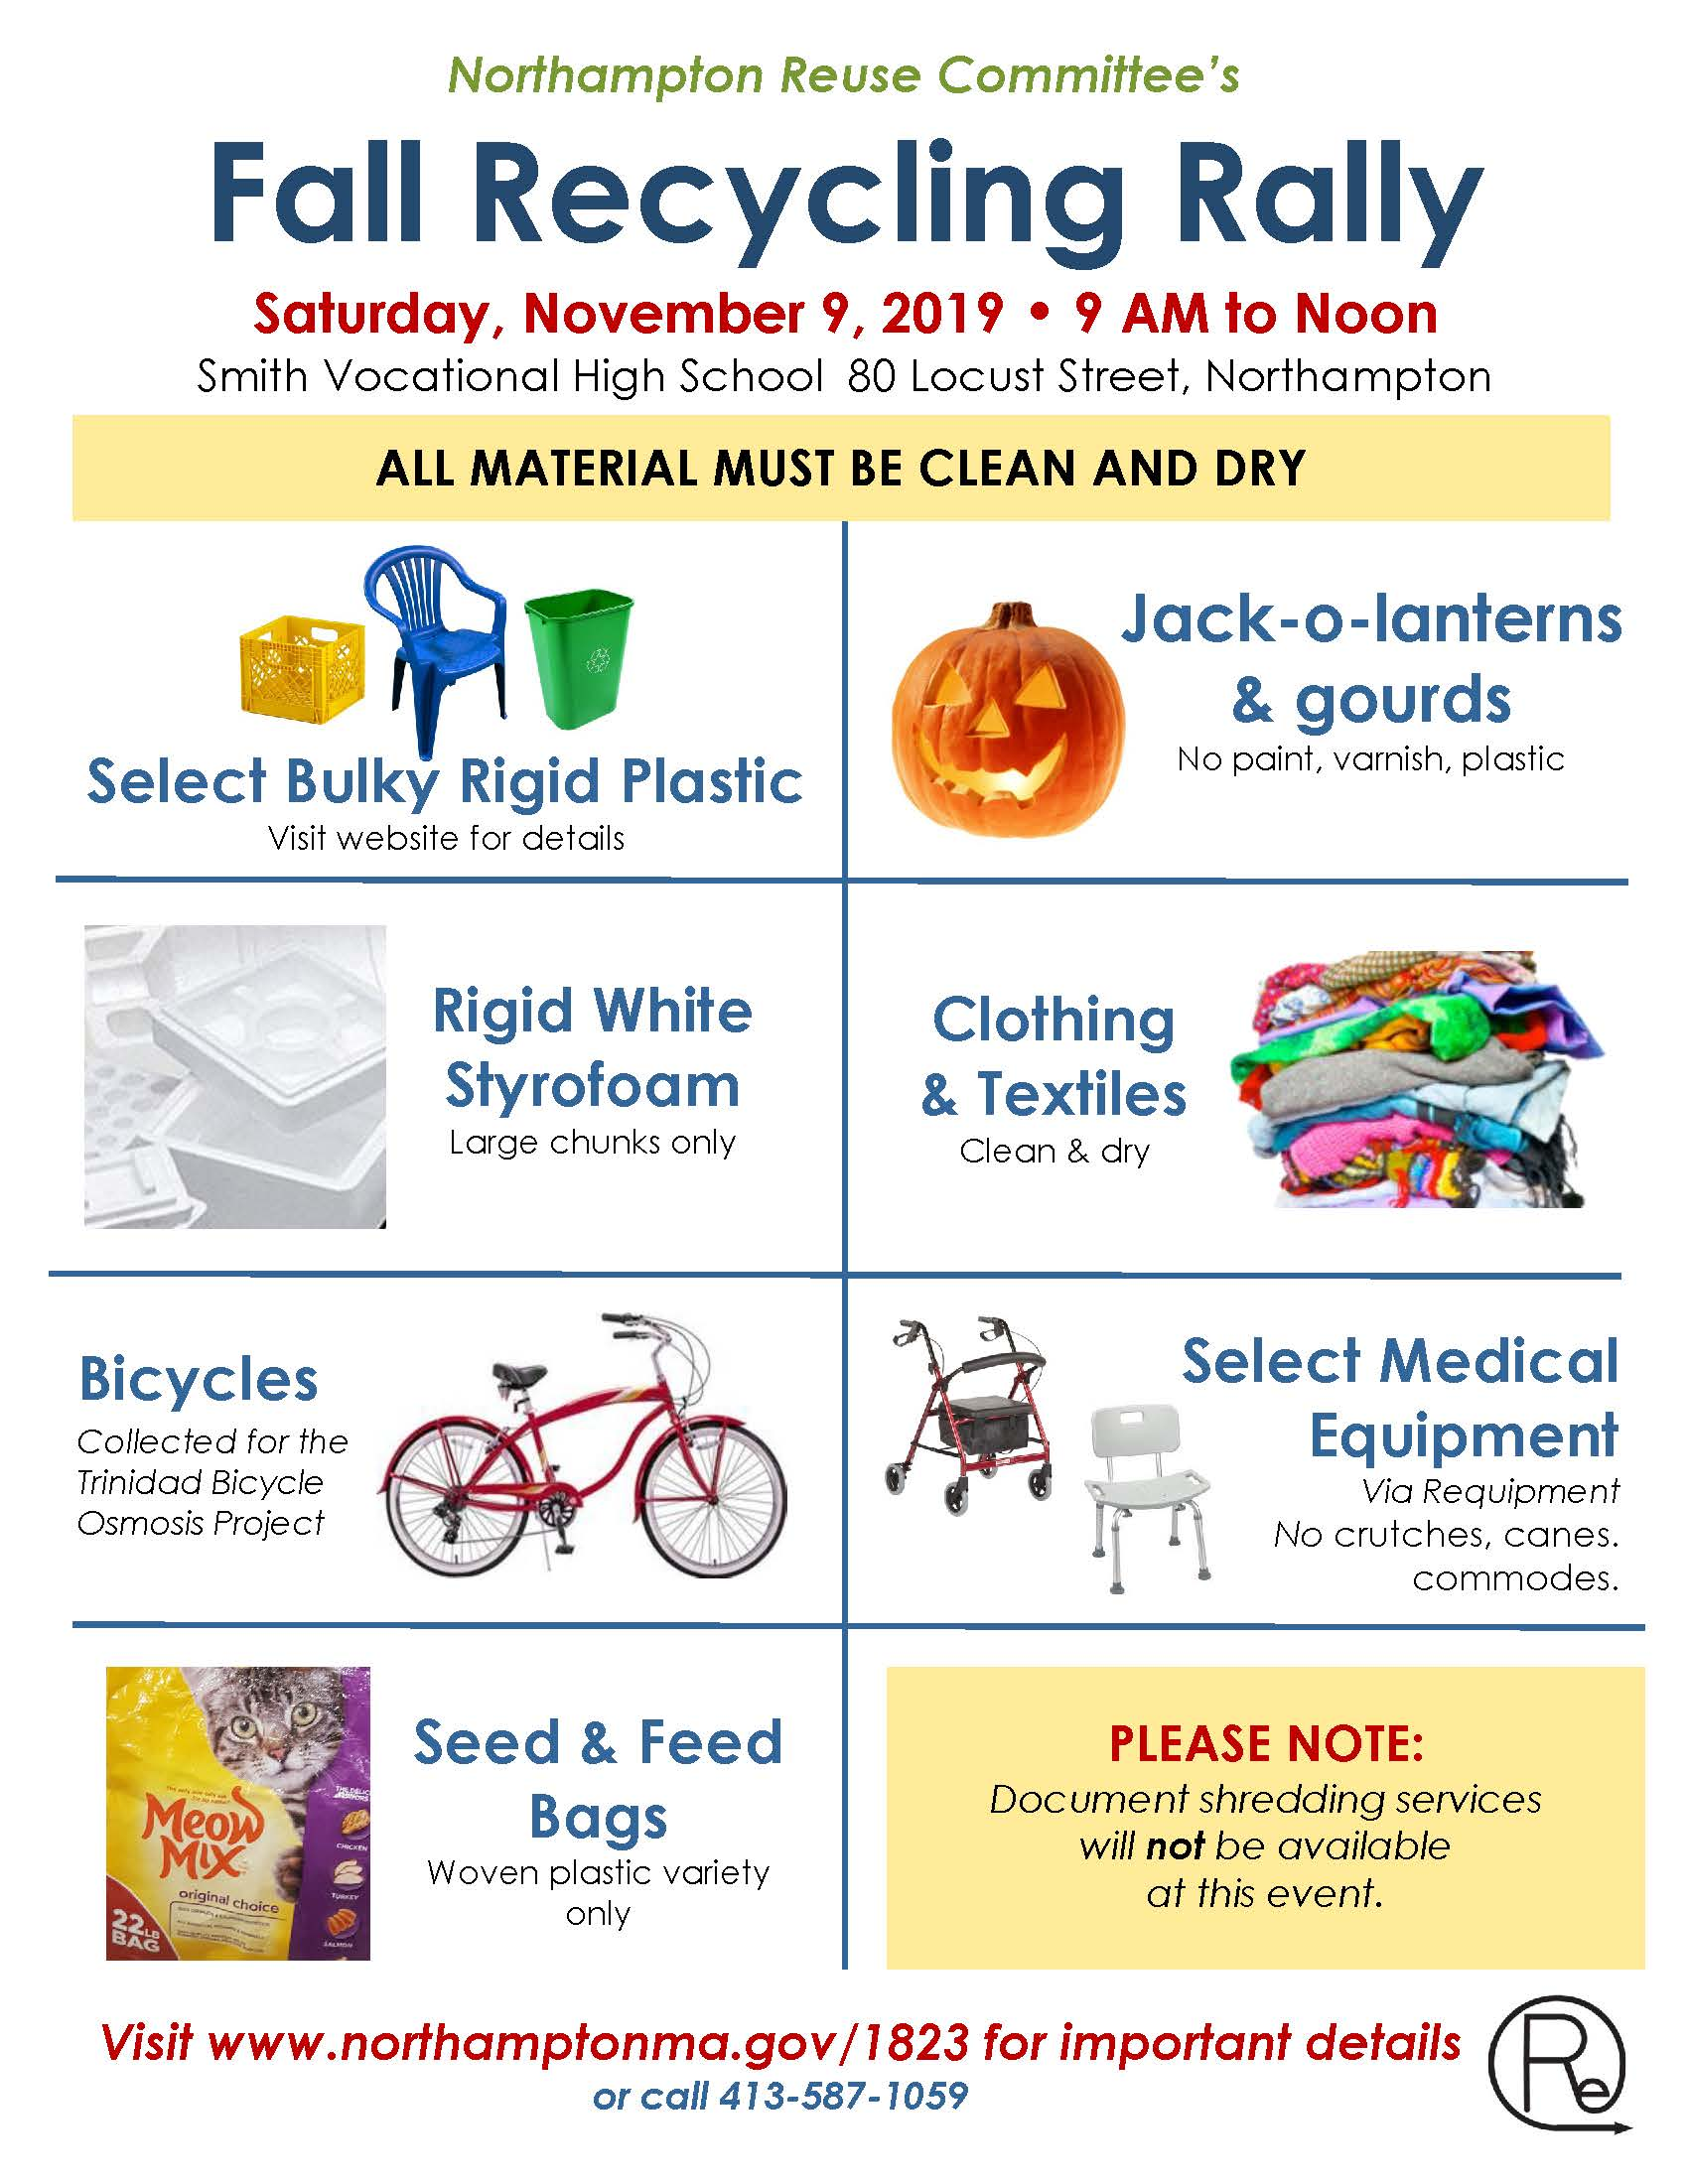 Image of the 2019 Fall Recycling Rally poster